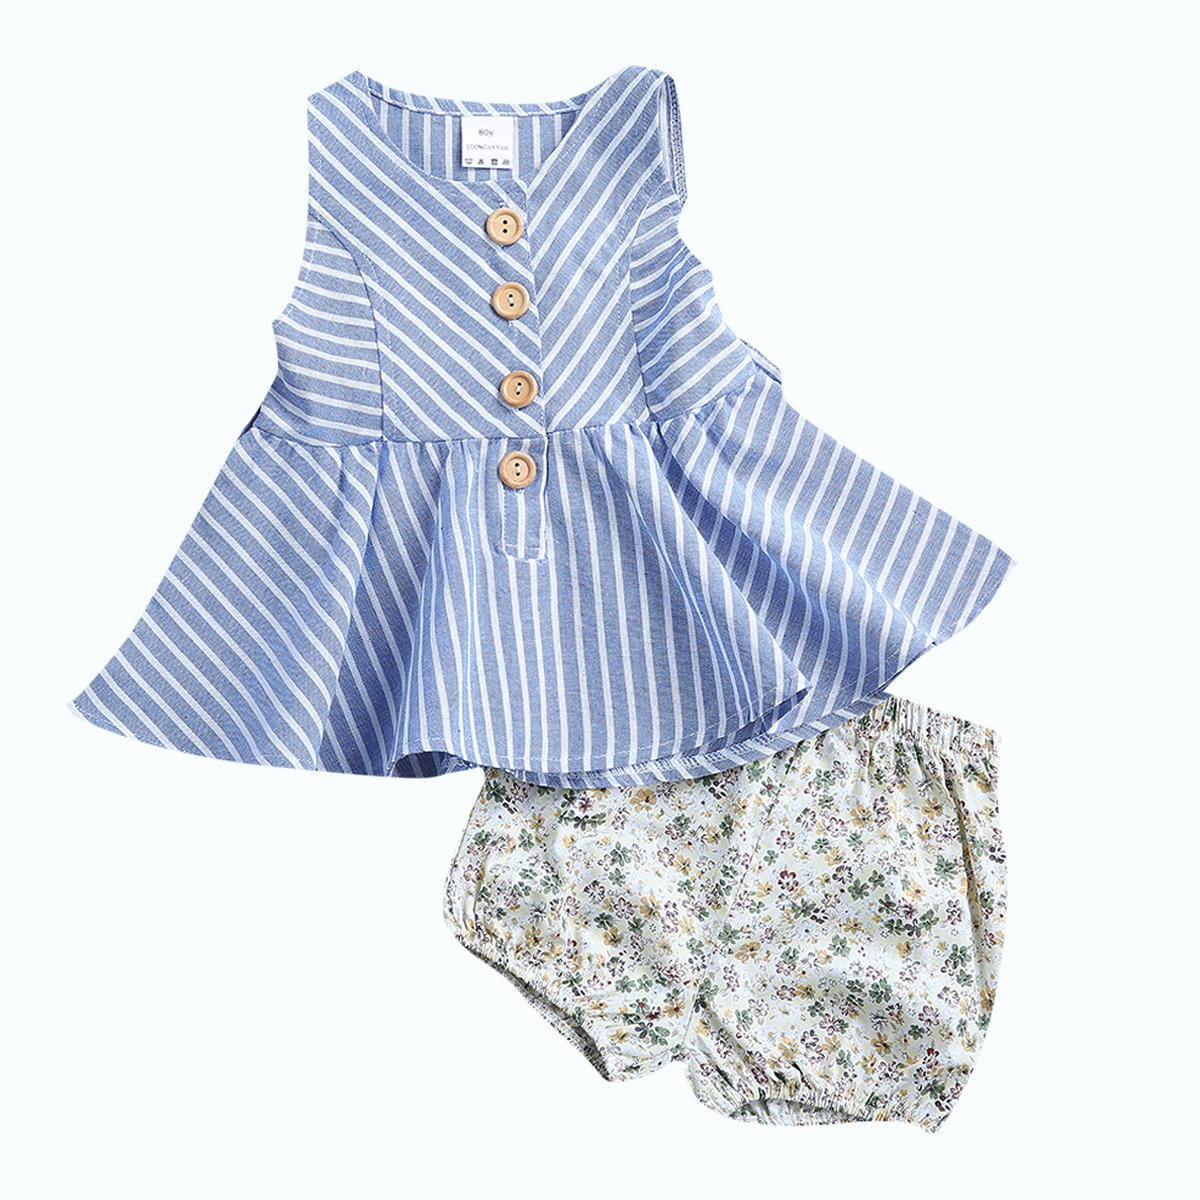 2017 Hot sell Summer Baby Girls Clothes Summer Child Cotton Strip Dress Sleeveless Tops Floral Pants Baby Clothing Set